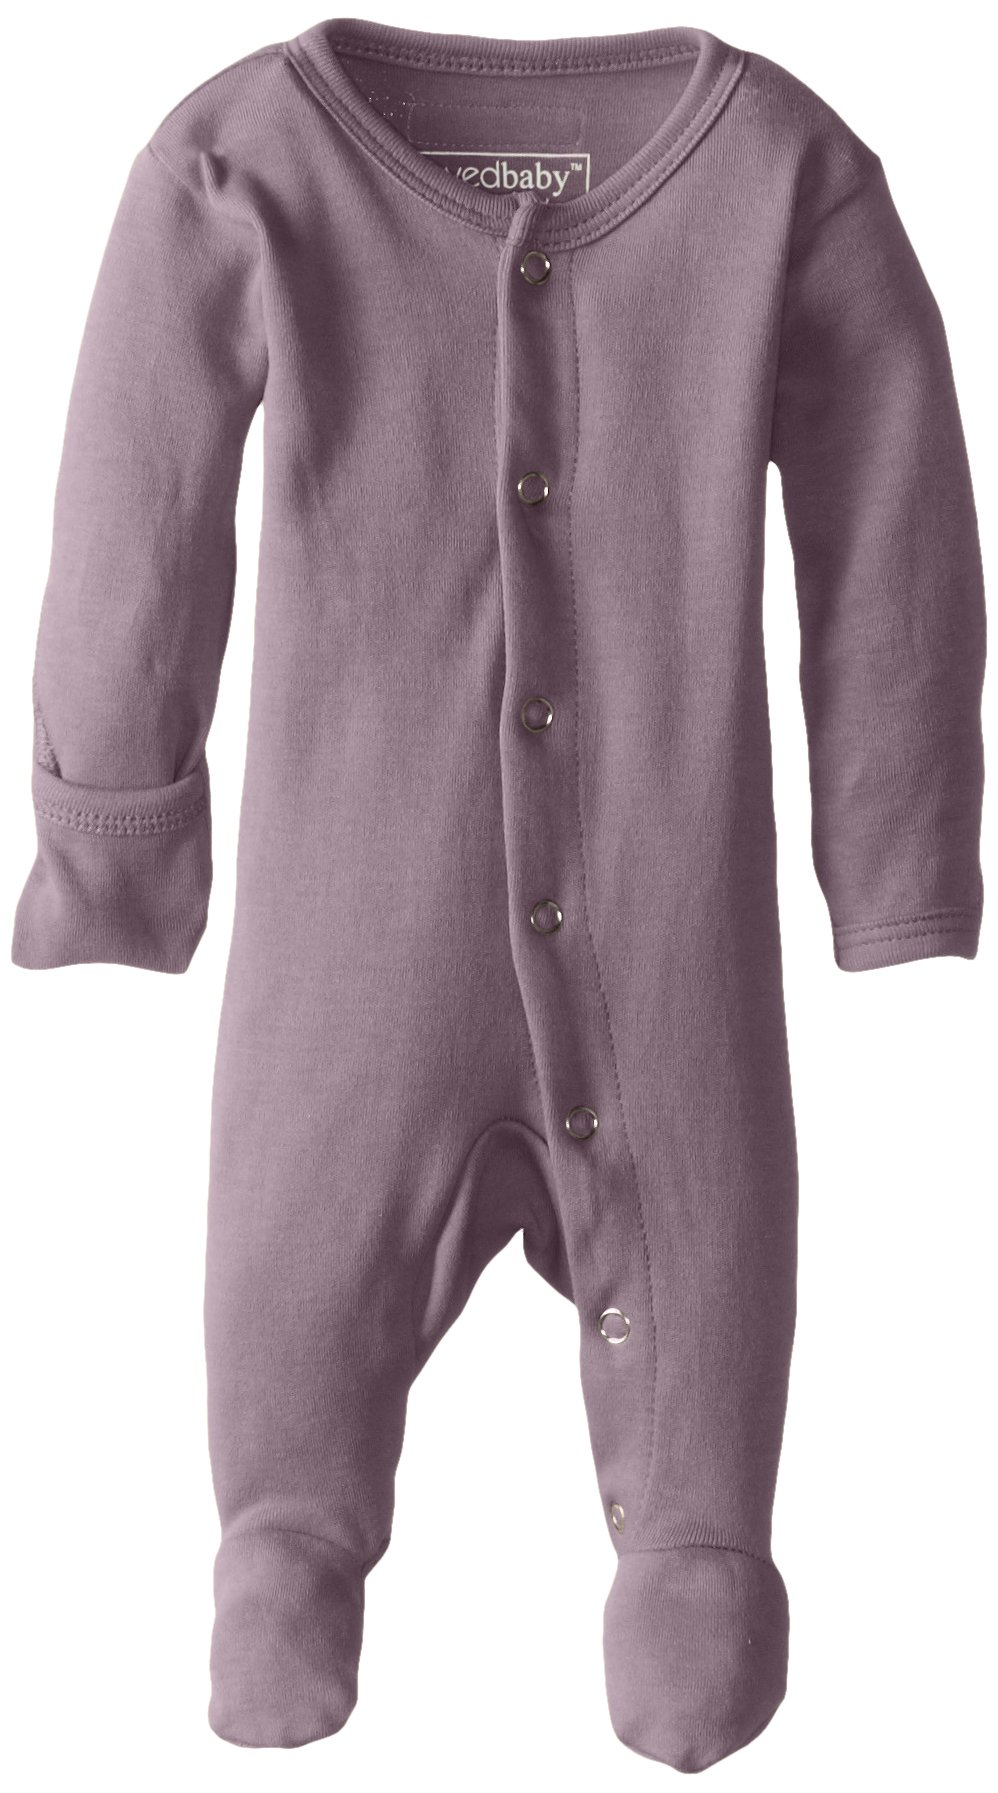 L'ovedbaby Unisex-Baby Organic Cotton Footed Overall, Lavender, 0/3 Months